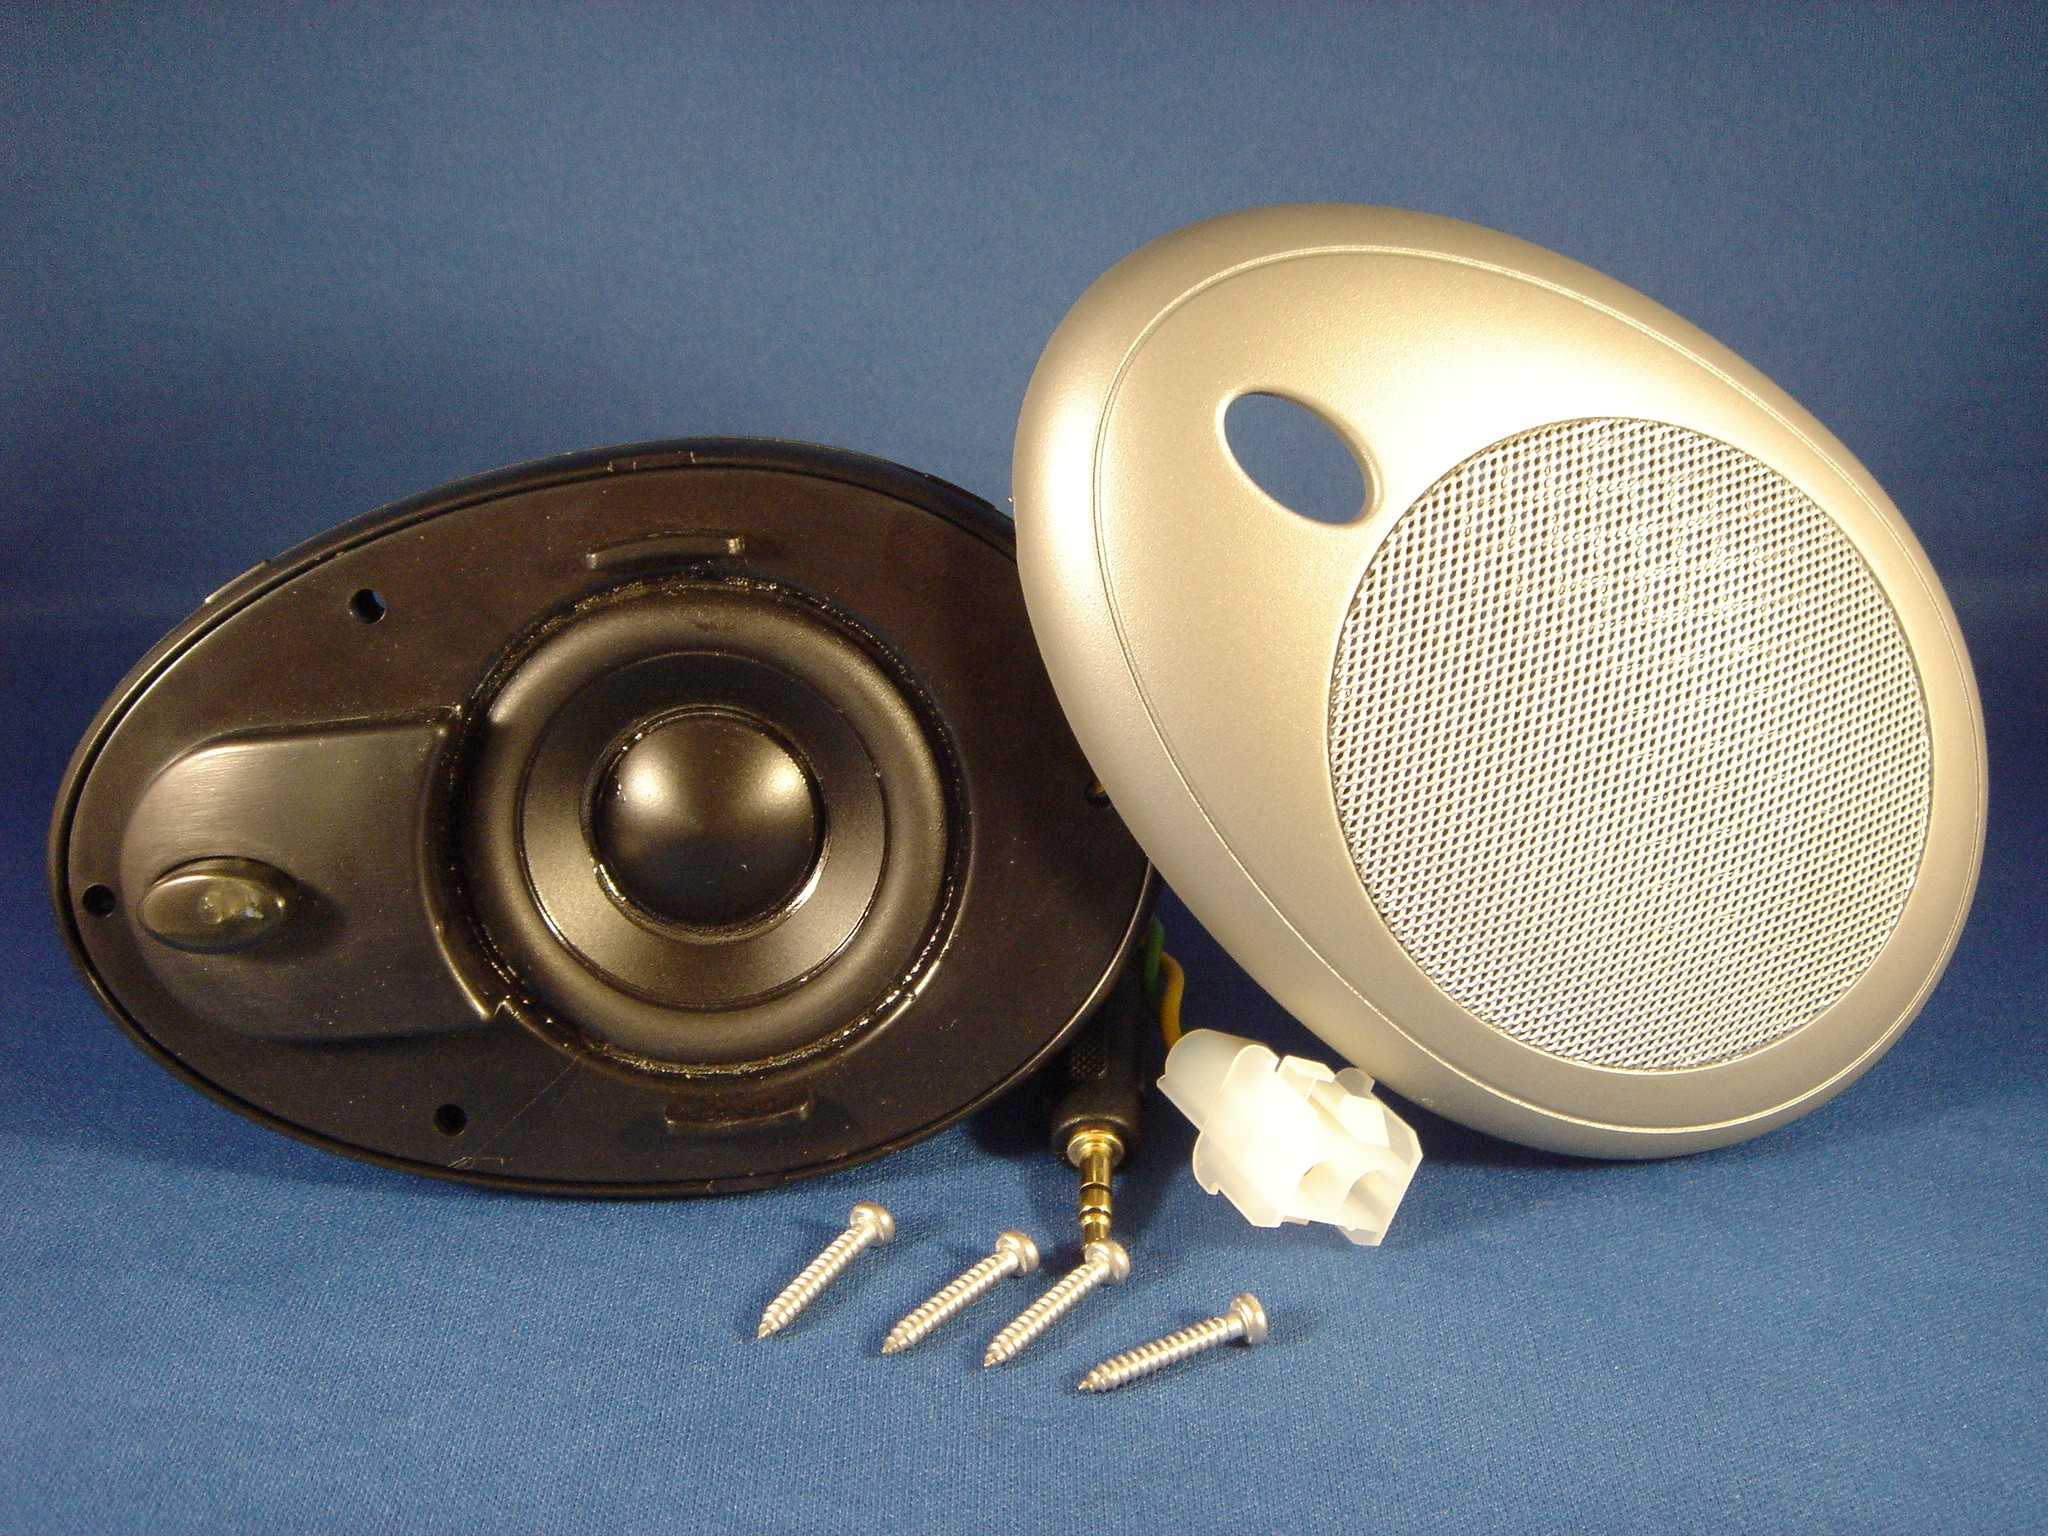 JACUZZI® 2006-2008 J-400 Series Oval Stereo Speaker with Grill, 20169-001